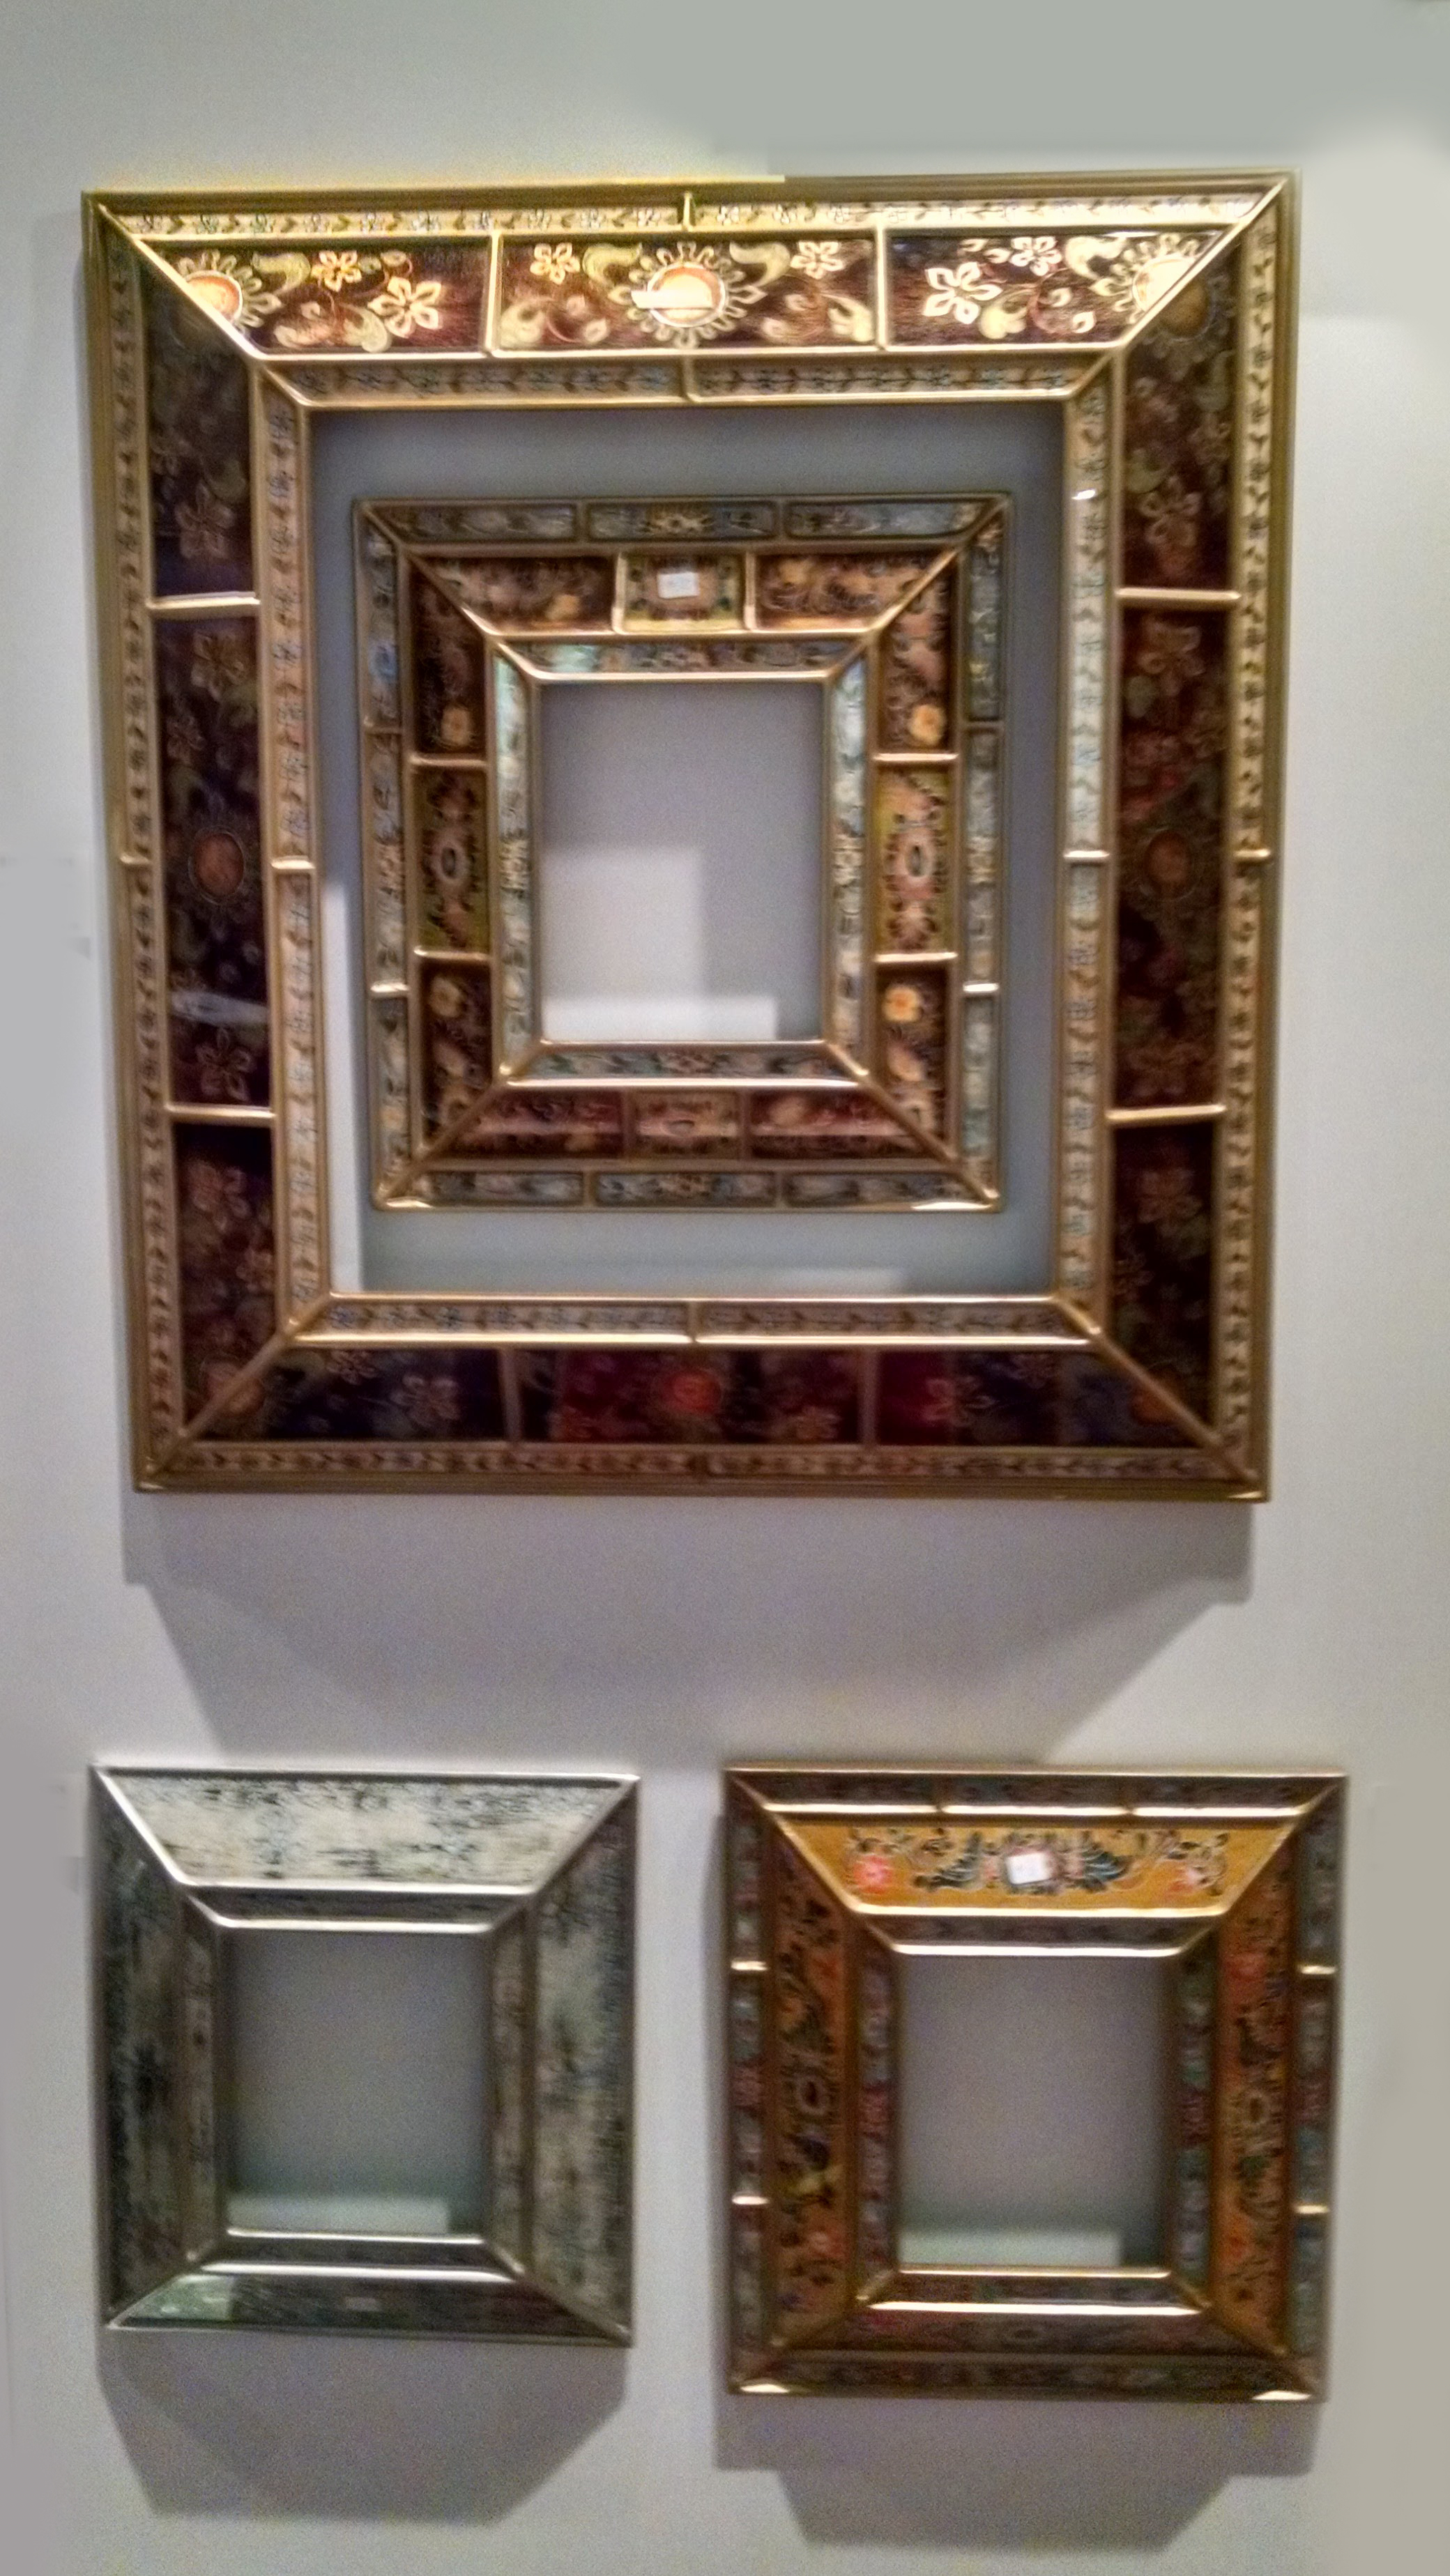 come to one of our three frame shops and let our experienced and knowledgeable staff help you pick out the right readymade wall frames for your needs and